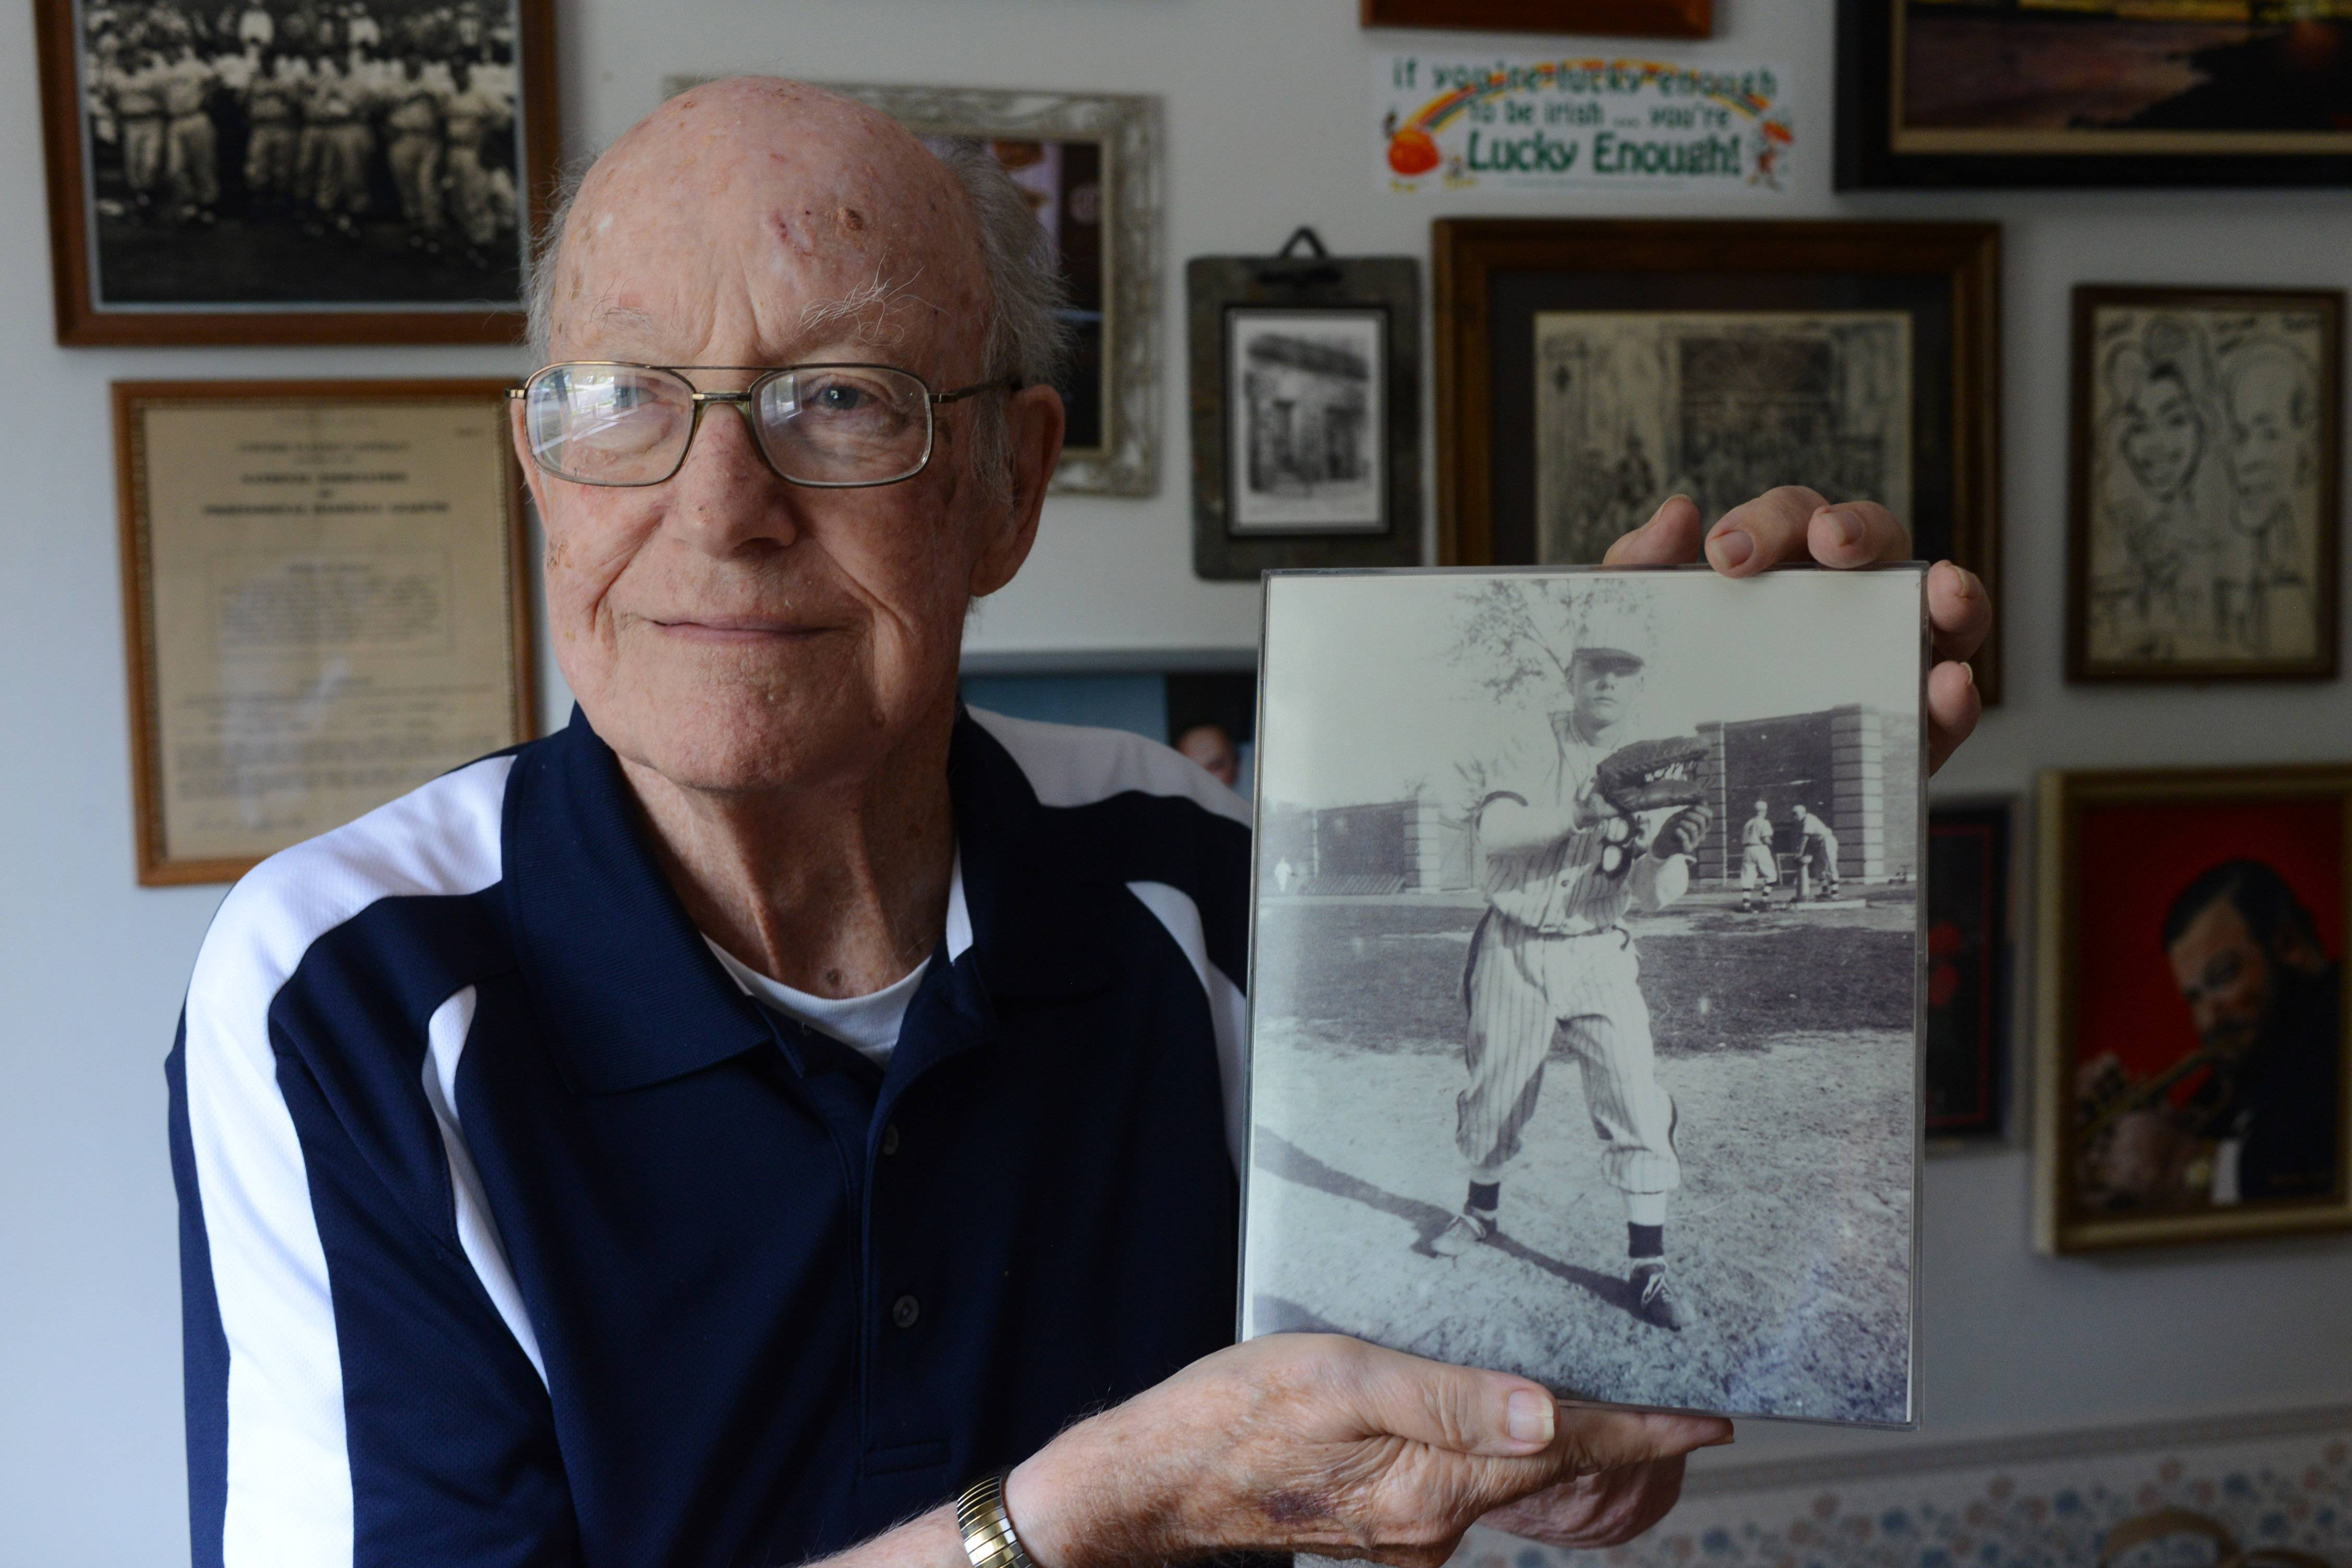 Lifelong Cubs fan from Palatine recalls attending '45 World Series